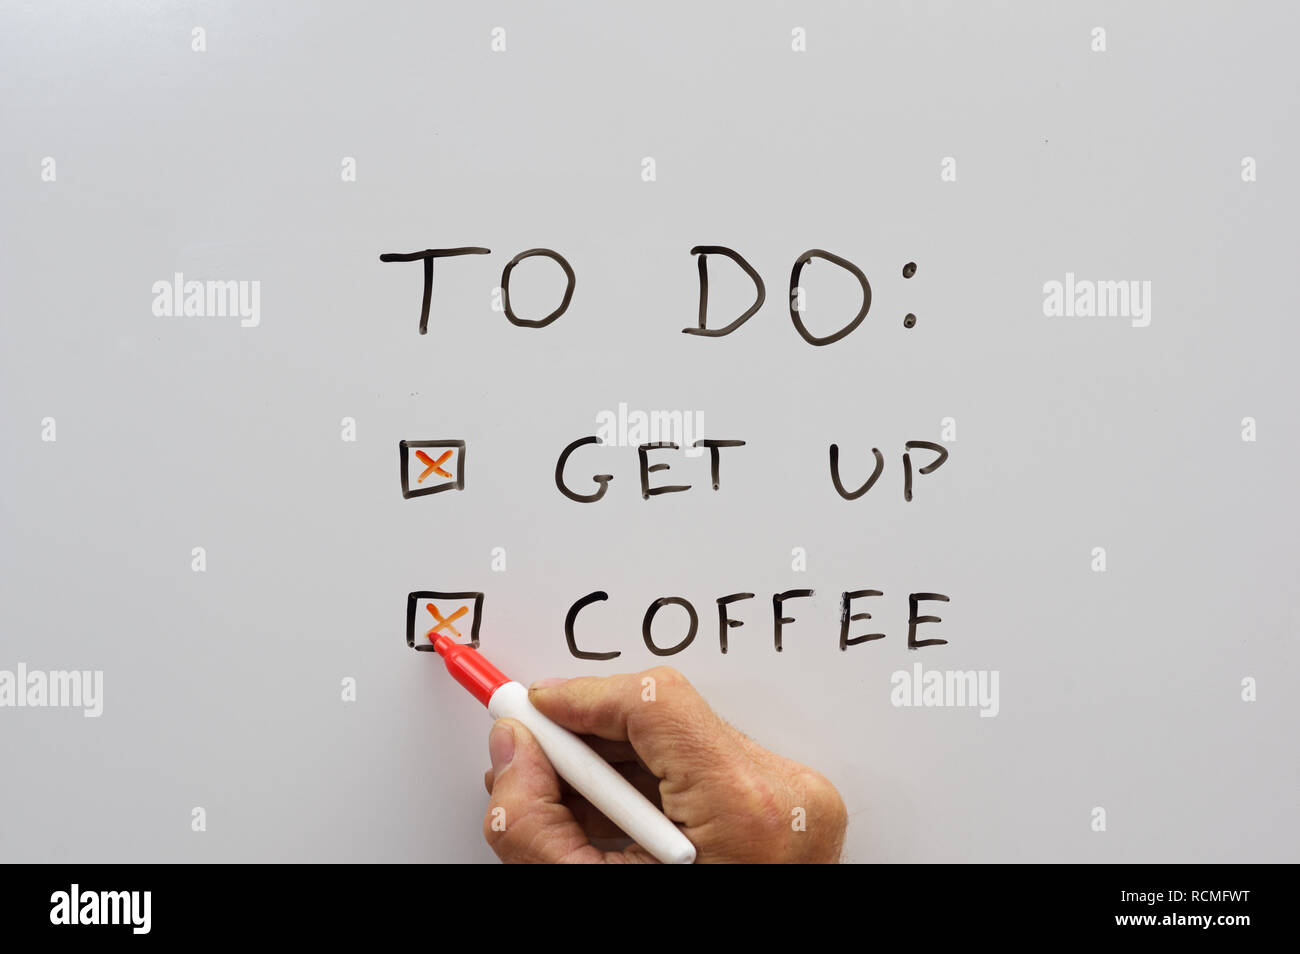 a hand with a dry erase marker checking off a to do list with get up and coffee on a whiteboard - Stock Image